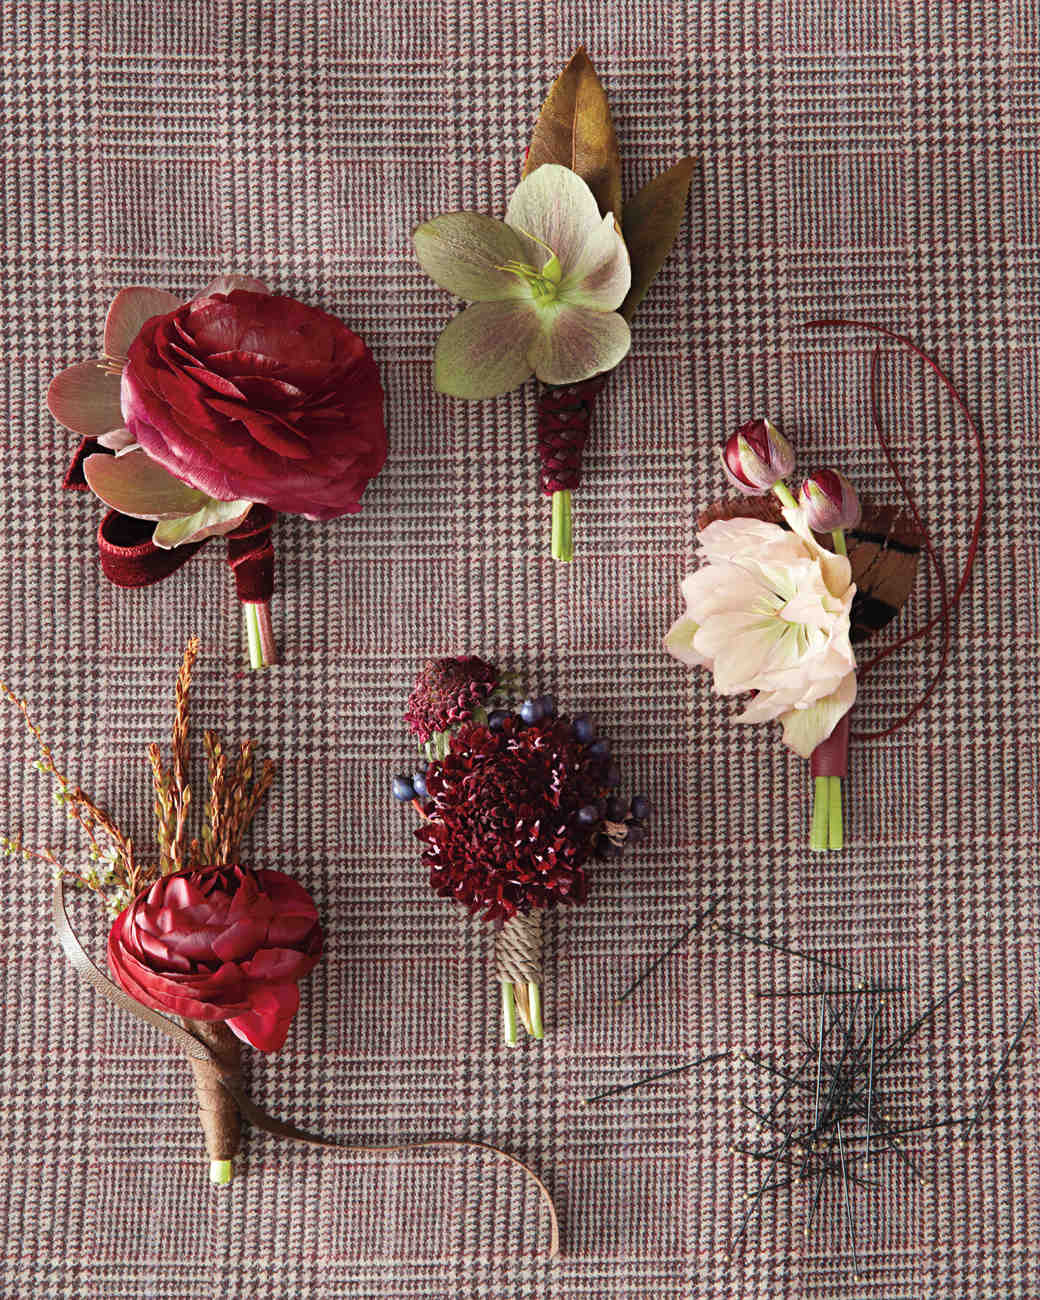 boutonniere-008-exp2-flowers-mwd110159.jpg